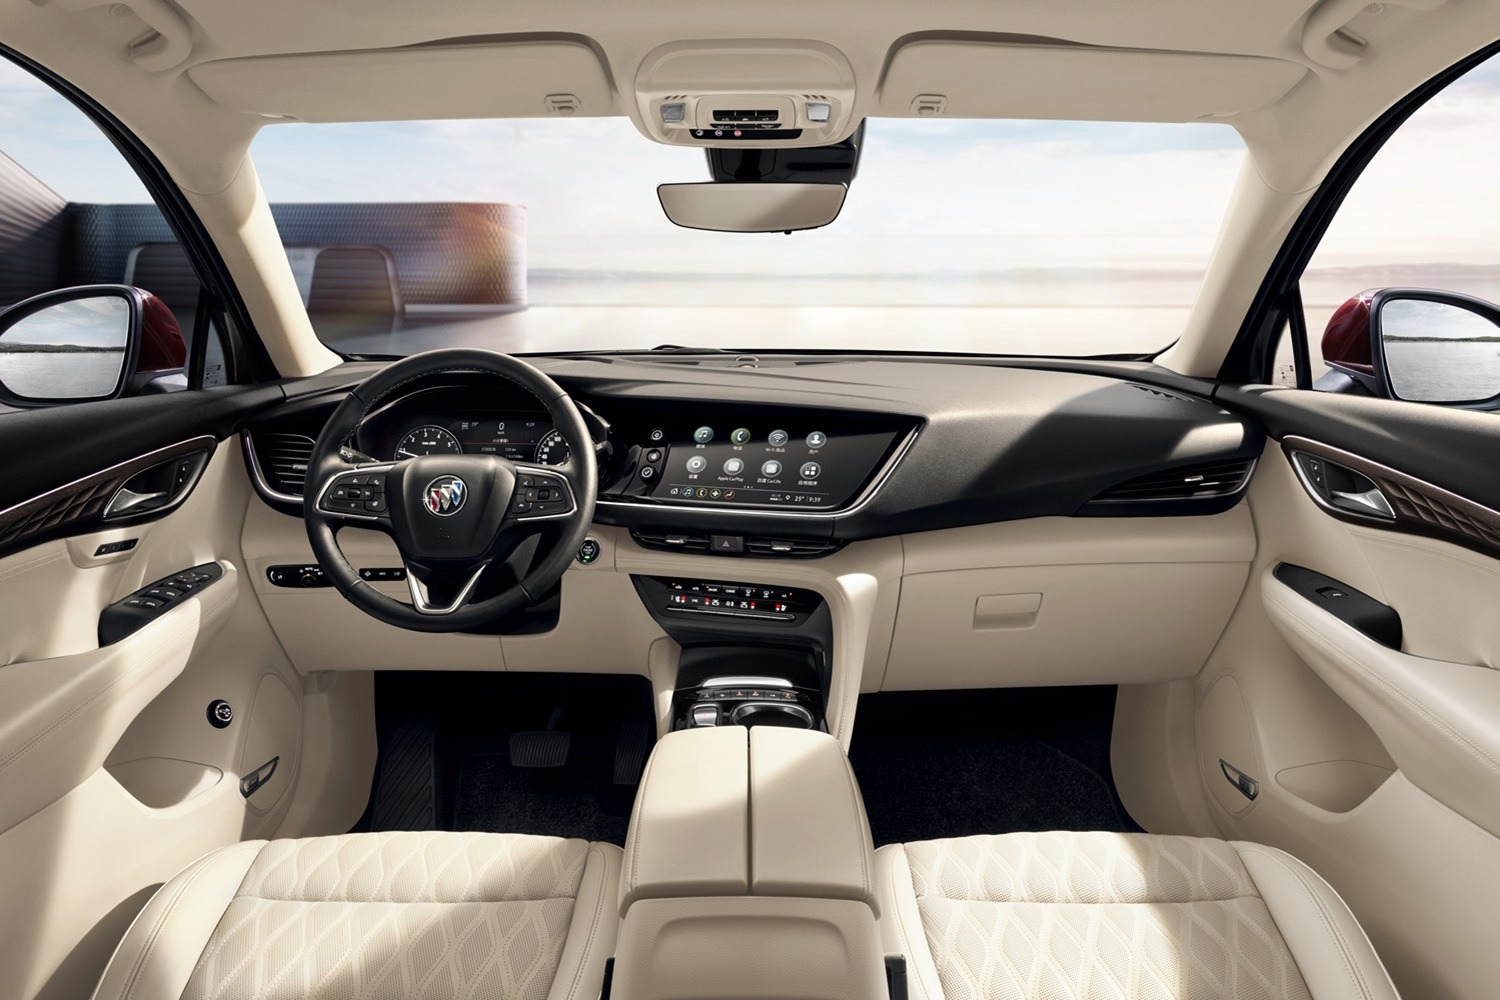 2021 Buick Envision Interior Revealed In Brand New Photos New 2021 Buick Riviera Engine, History, Dashboard